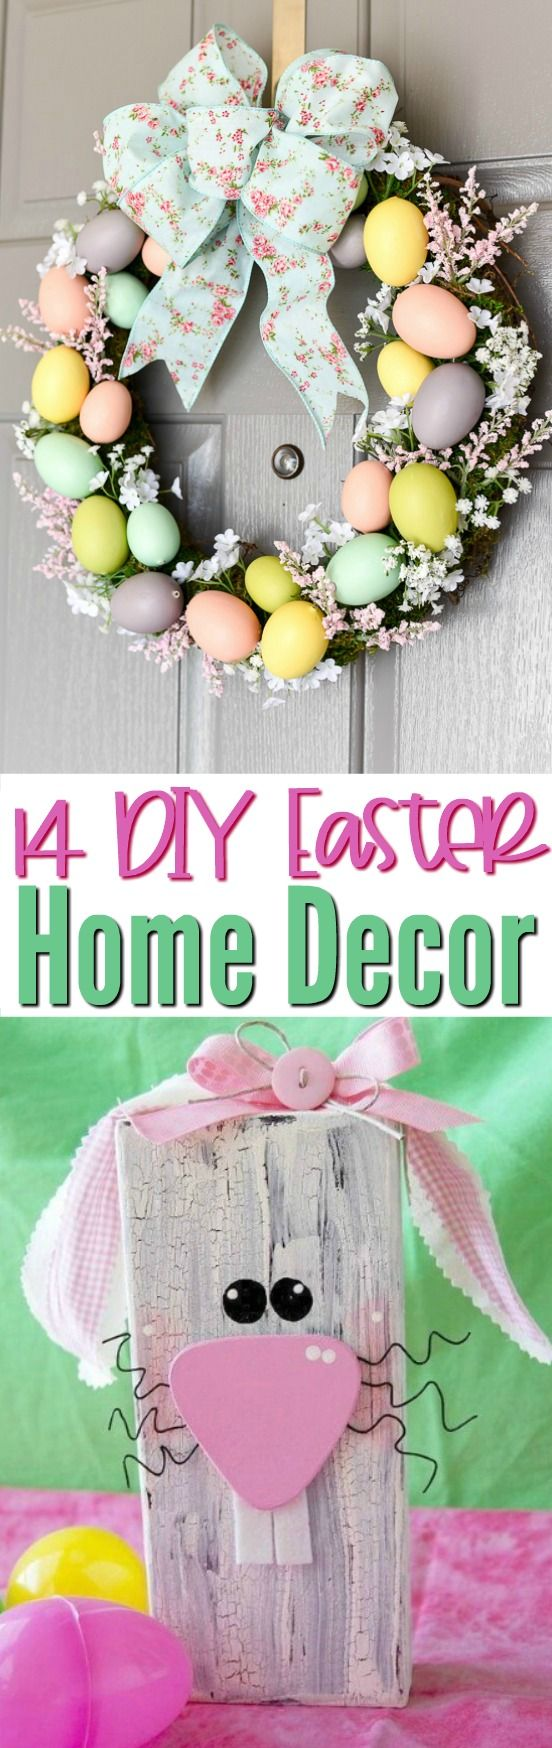 DIY Easter Home Decor - A Little Craft In Your Day ...